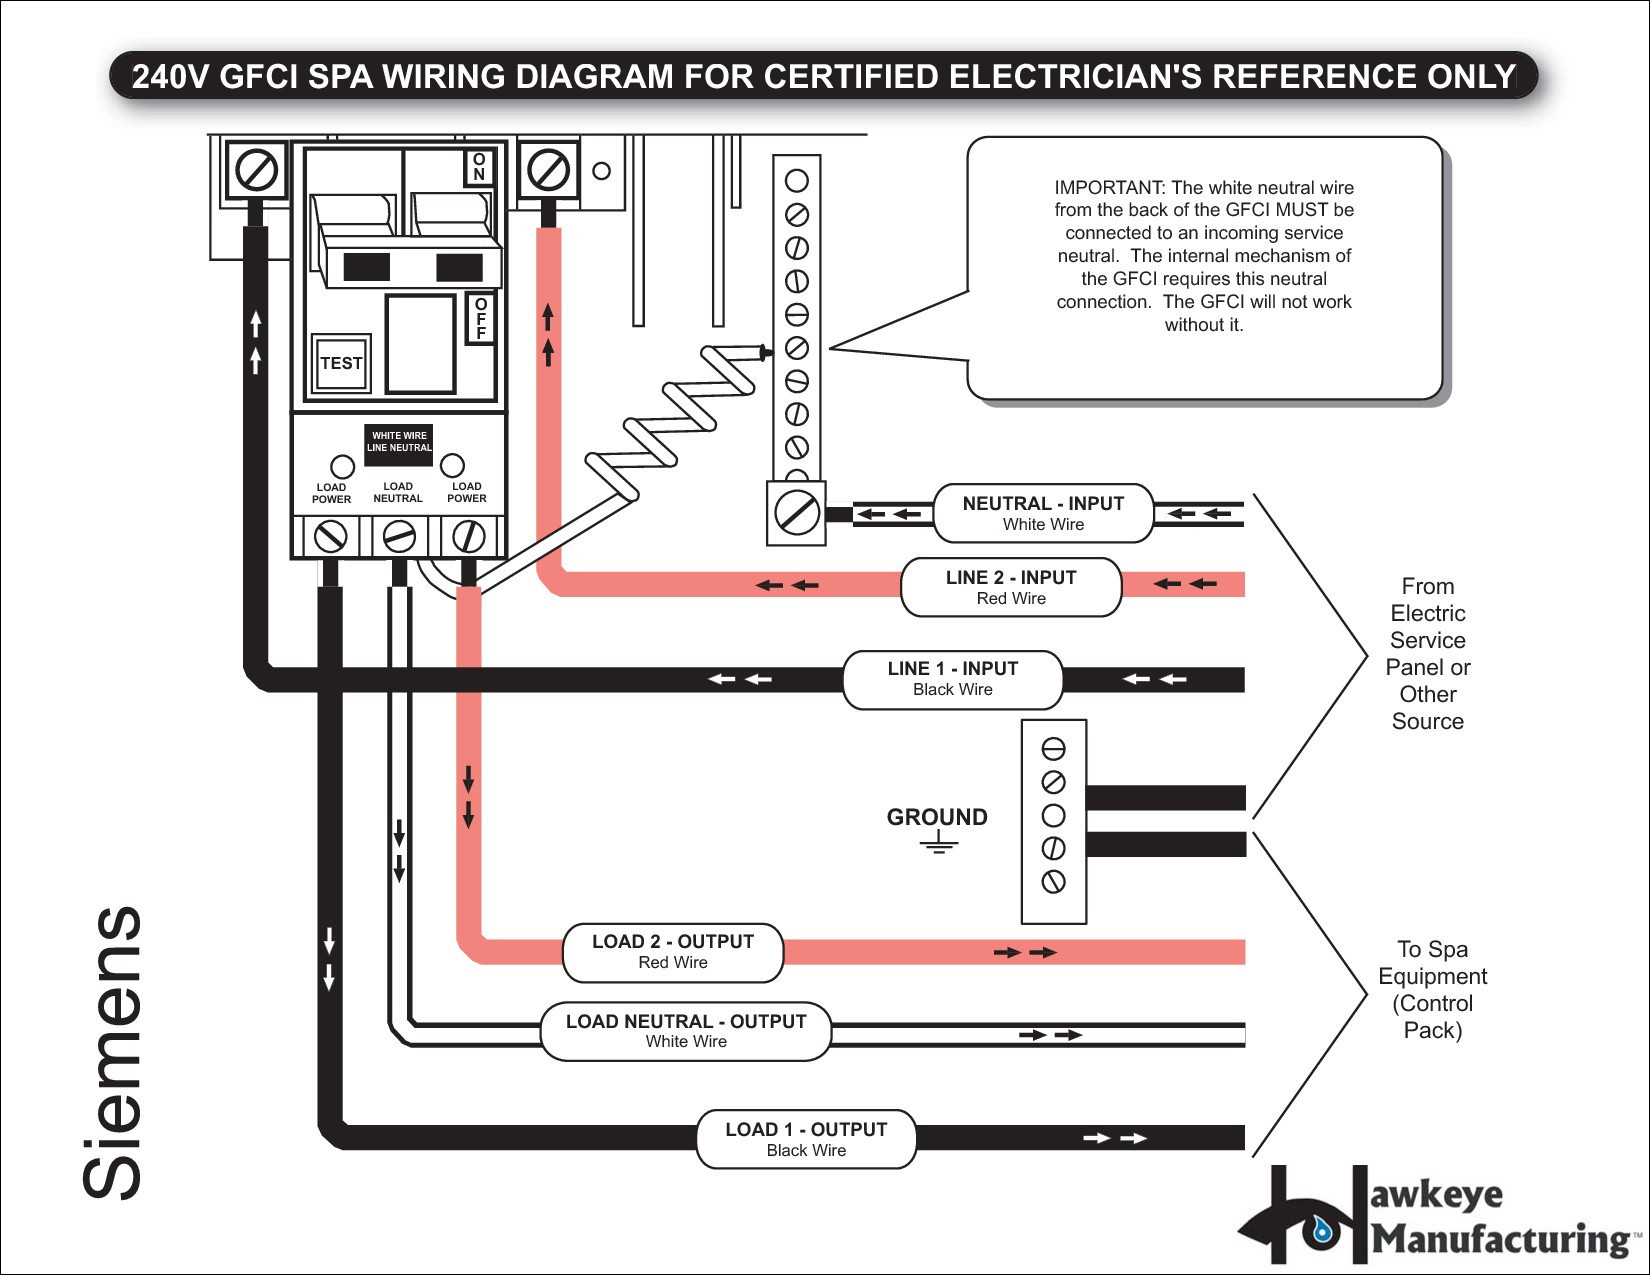 square d hot tub gfci breaker wiring diagram Collection-Wiring Diagram Gfci  Breaker Save Wiring. DOWNLOAD. Wiring Diagram ...